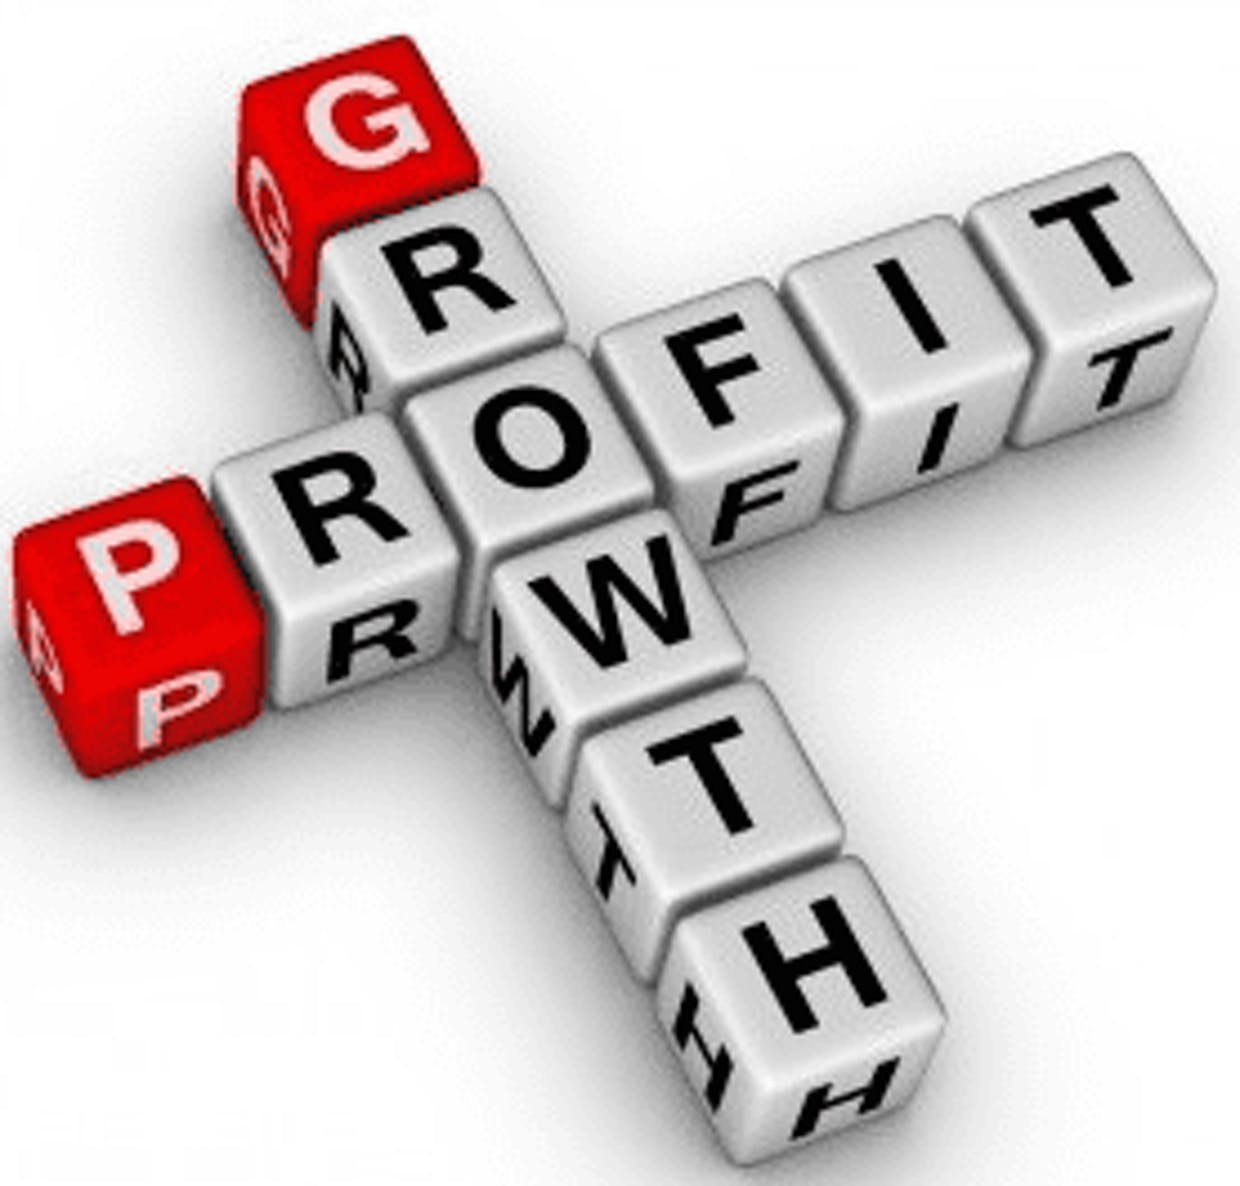 What's the difference between the growth rate and profitability.